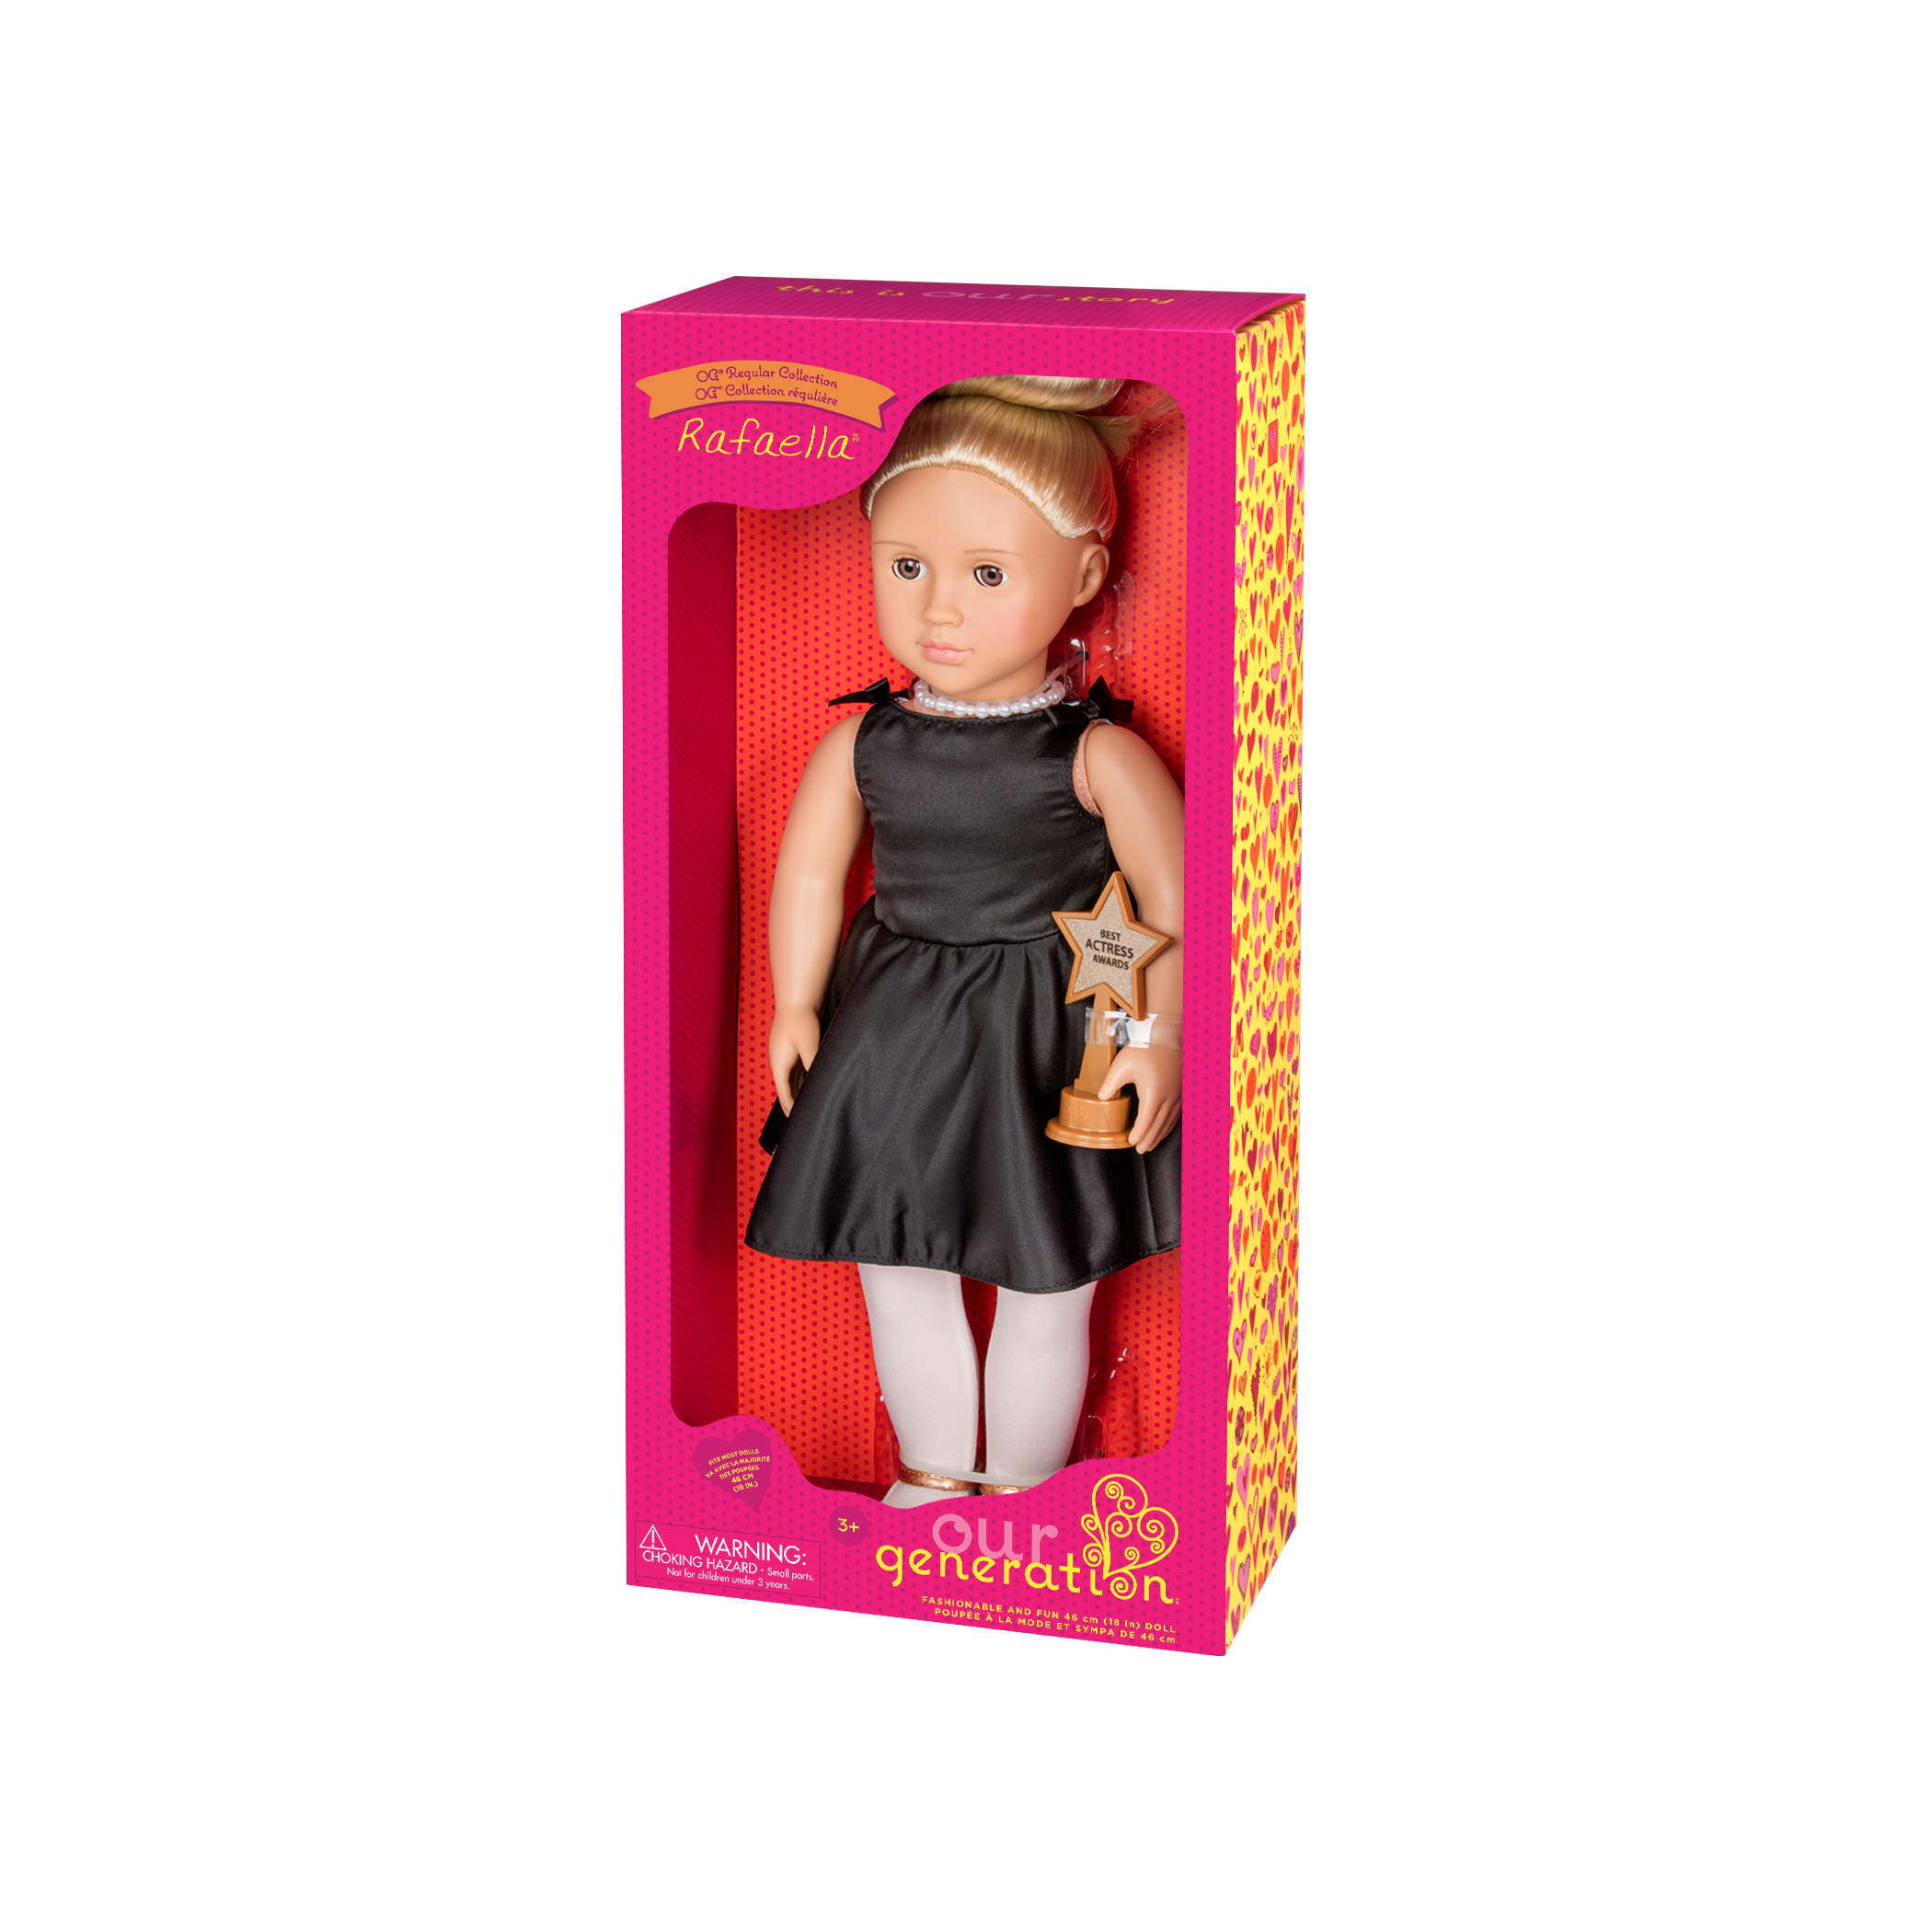 Rafaella Regular 18-inch Actress Doll in packaging